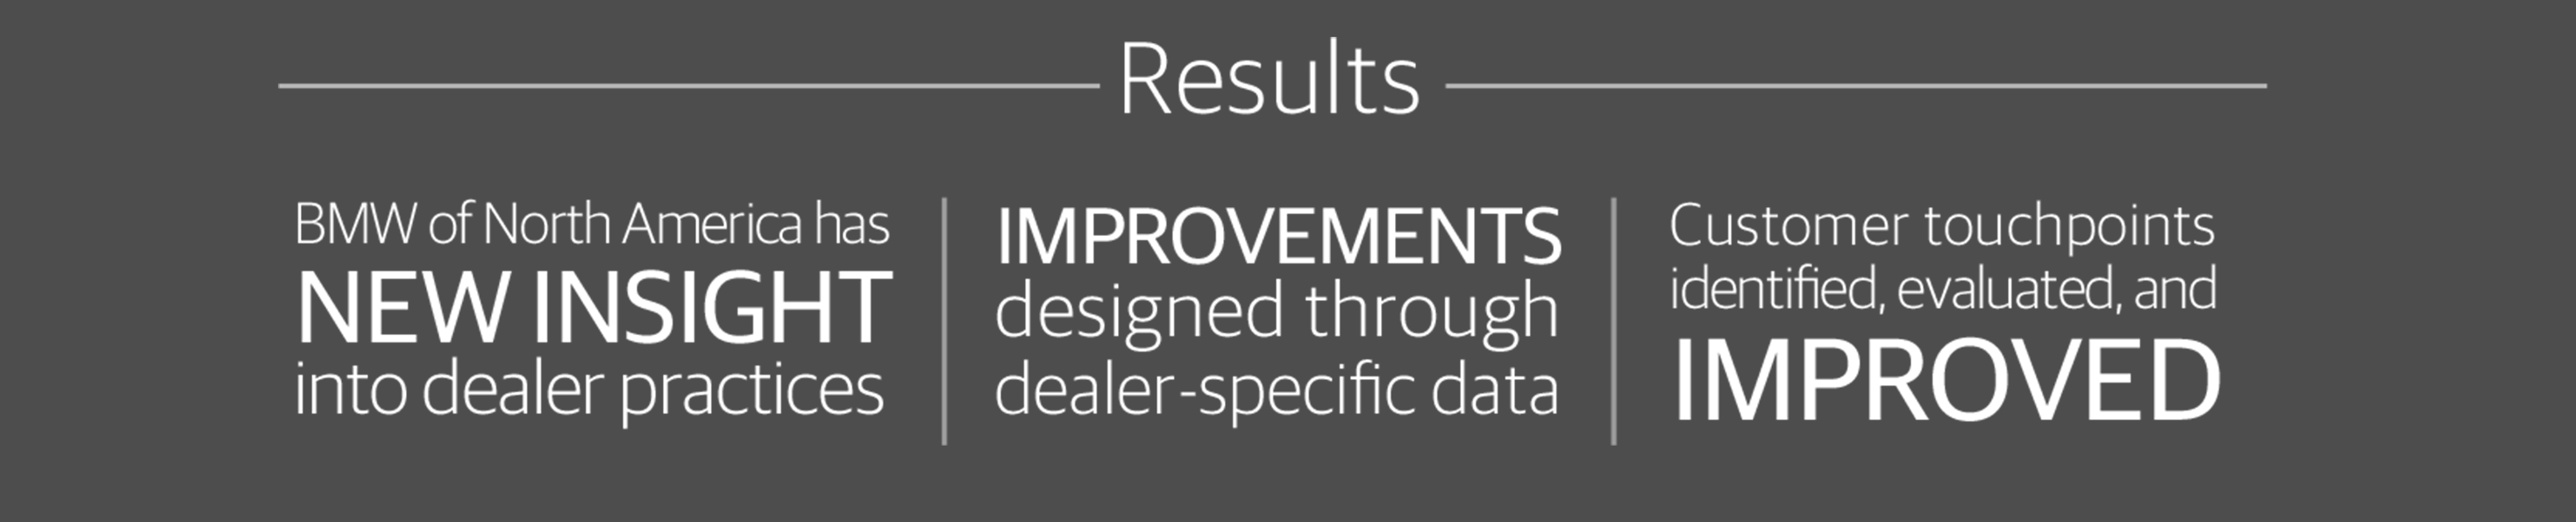 We evaluated their current operations and helped them build a consultative relationship with their dealerships